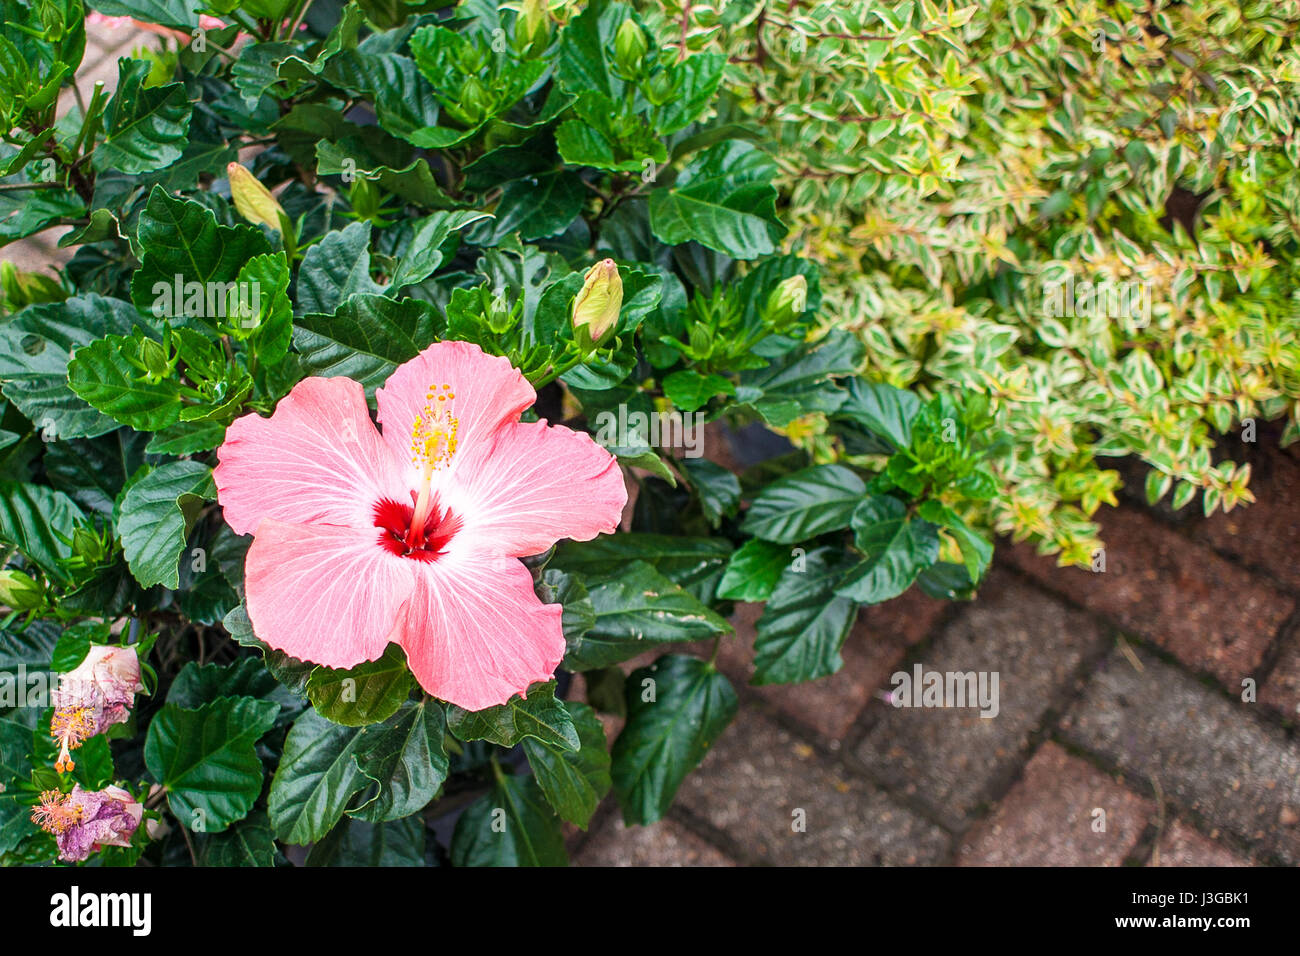 A Pink Hibiscus Flower Stock Photos & A Pink Hibiscus Flower Stock ...